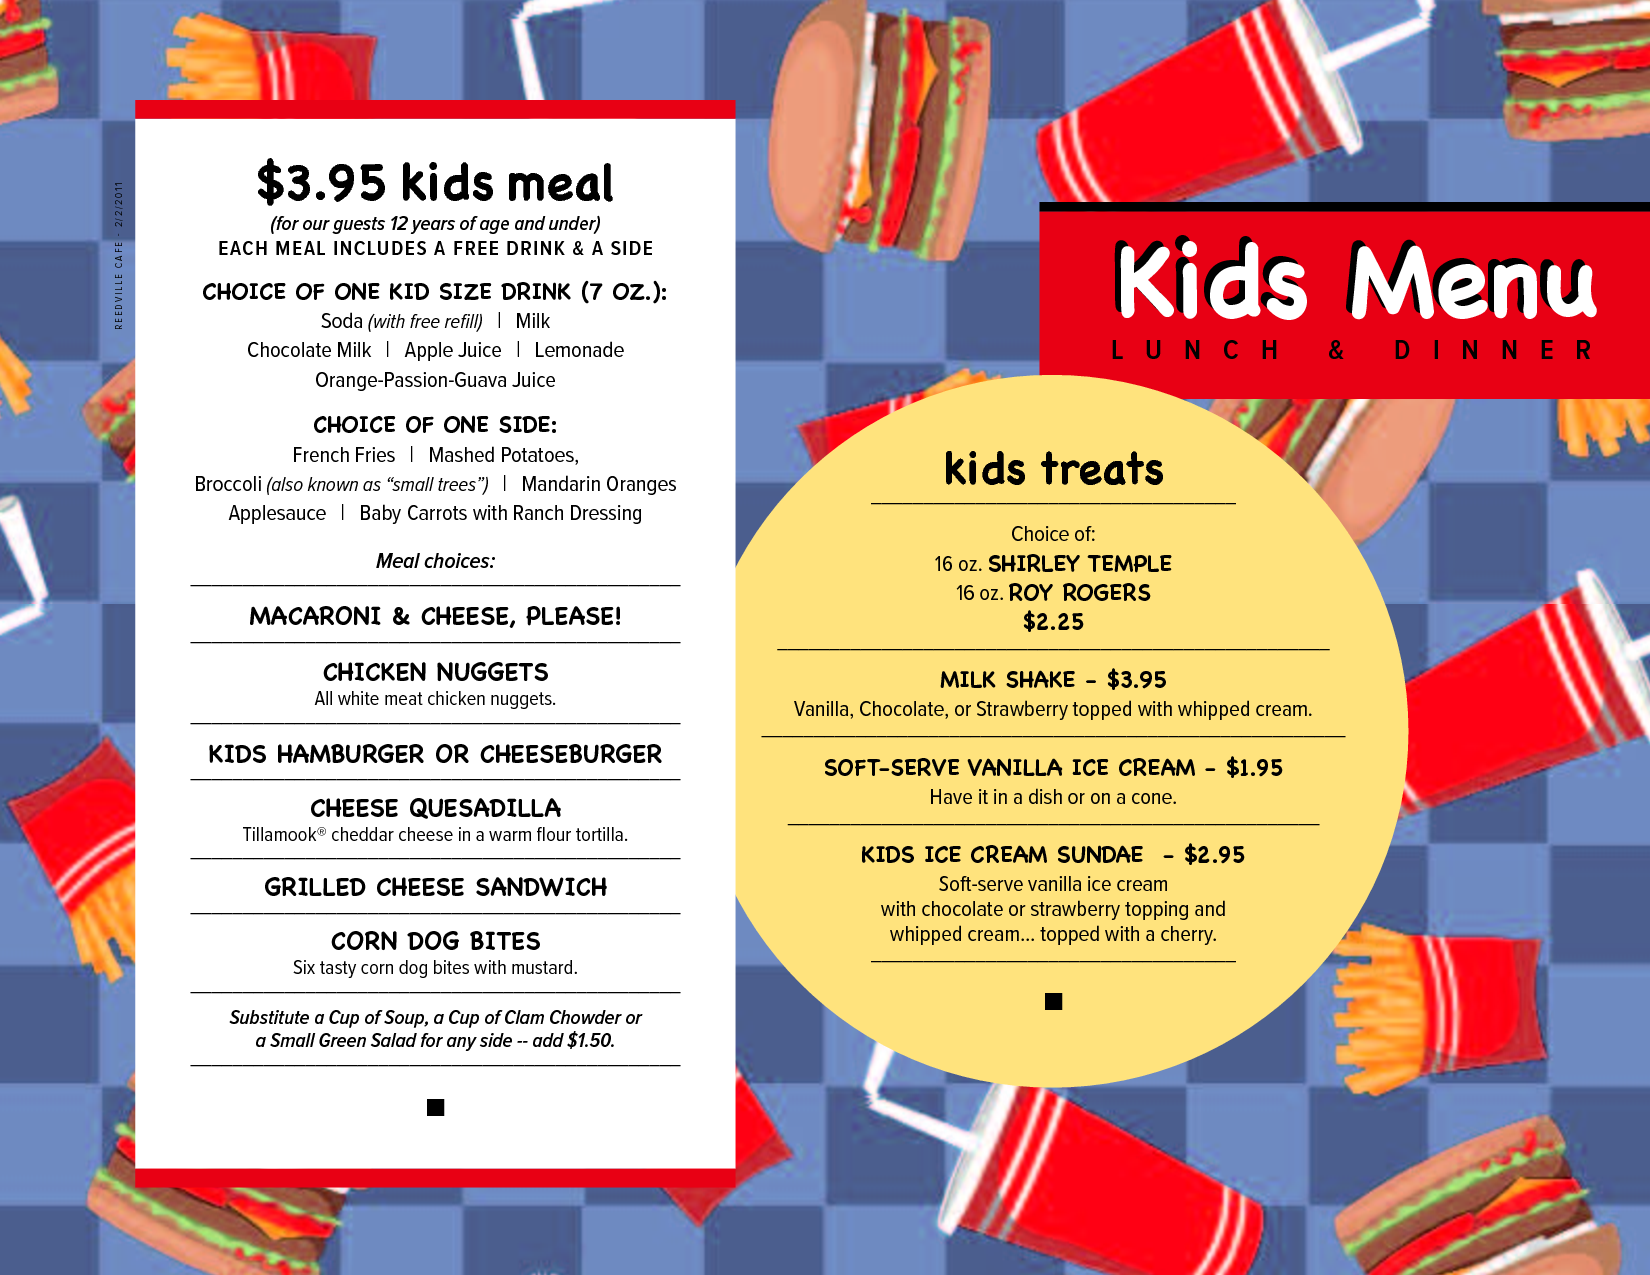 free menu templates | kids Menu kids Menu | menu ideas | Pinterest